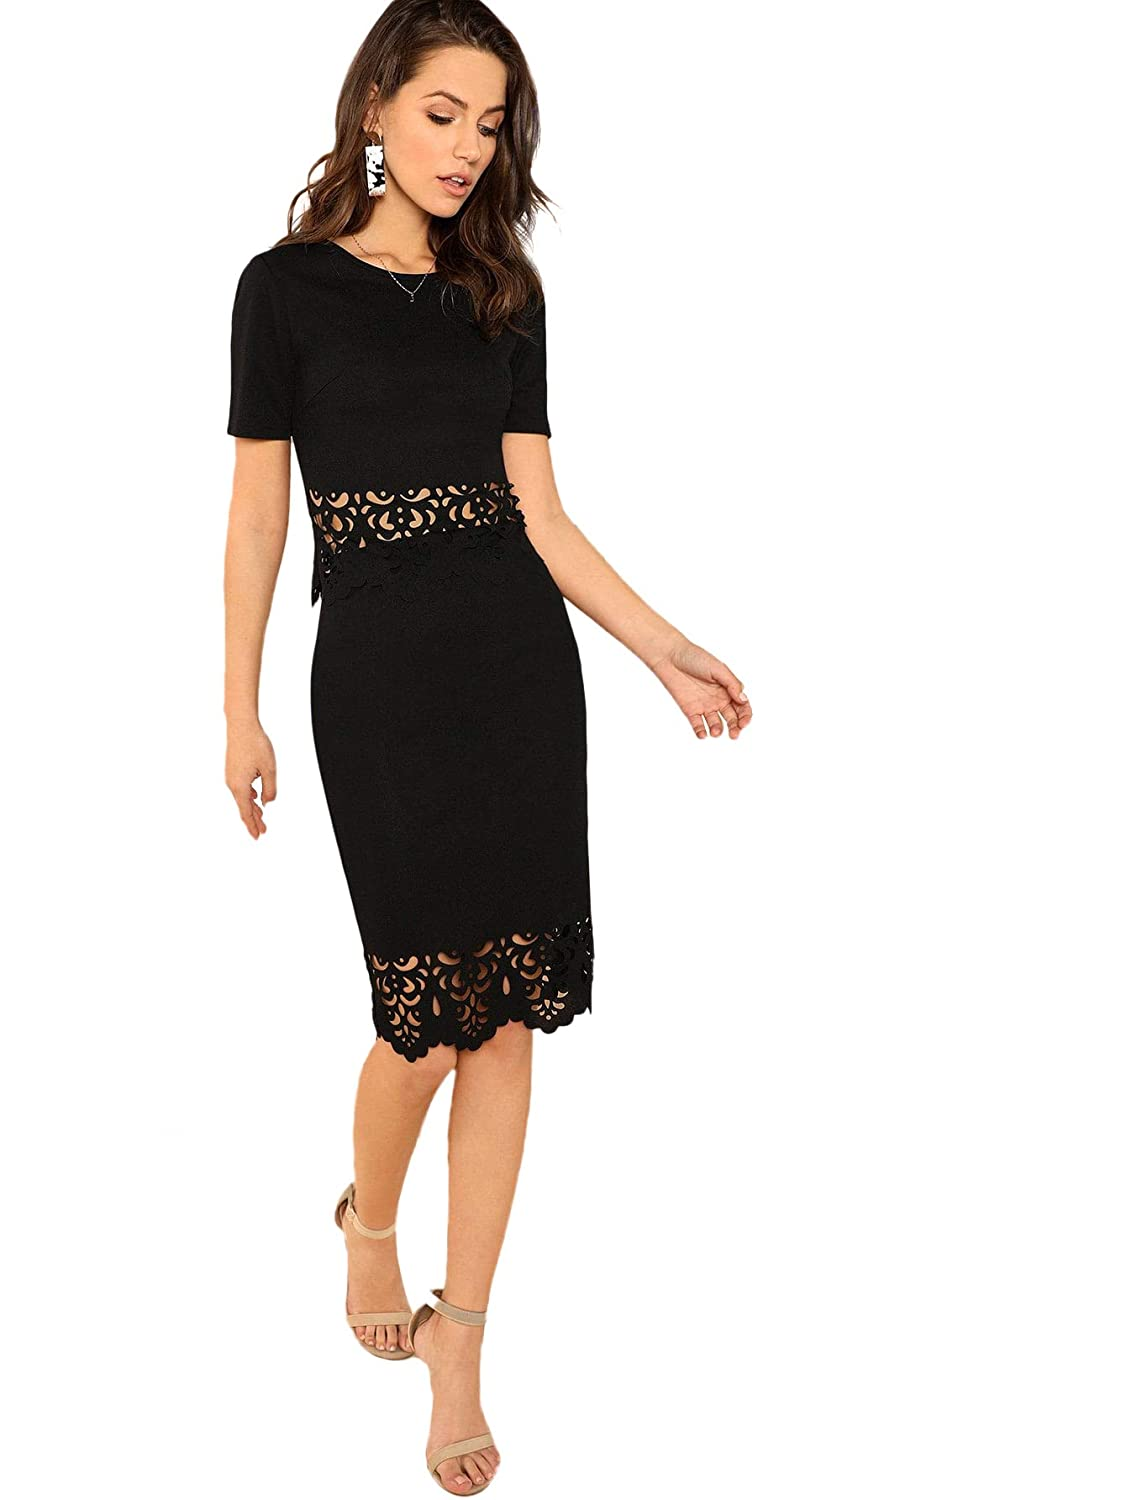 Black Verdusa Women's 2 Piece Outfits Elegant Scallop Fitted Top and Skirt Set Midi Dress